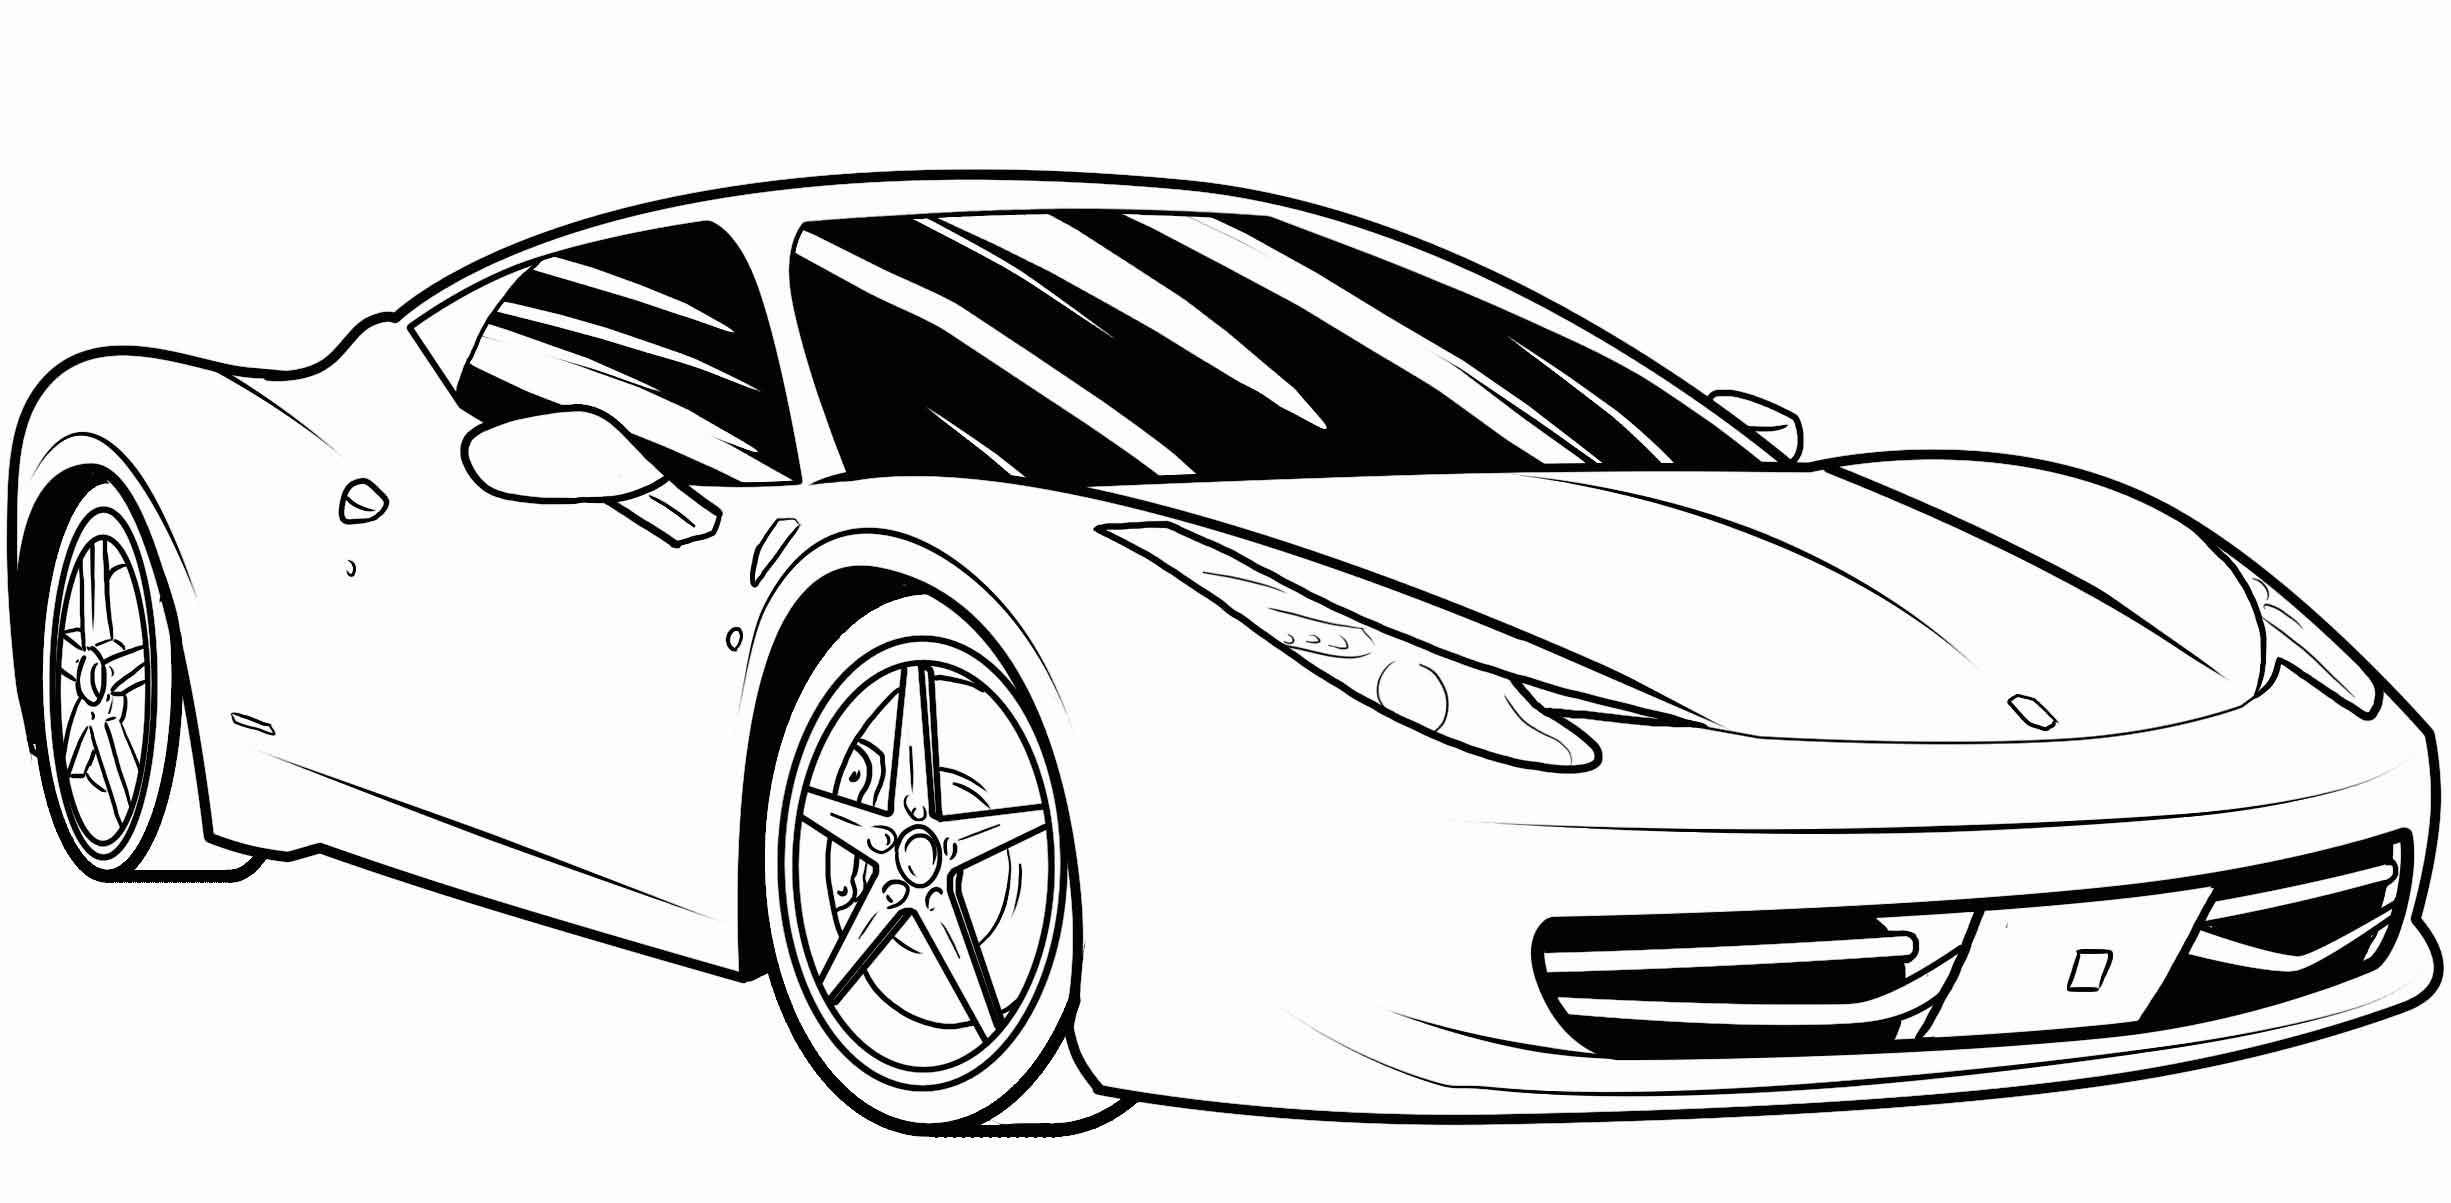 coloring pages ferrari cars ferrari coloring pages neo coloring ferrari cars pages coloring